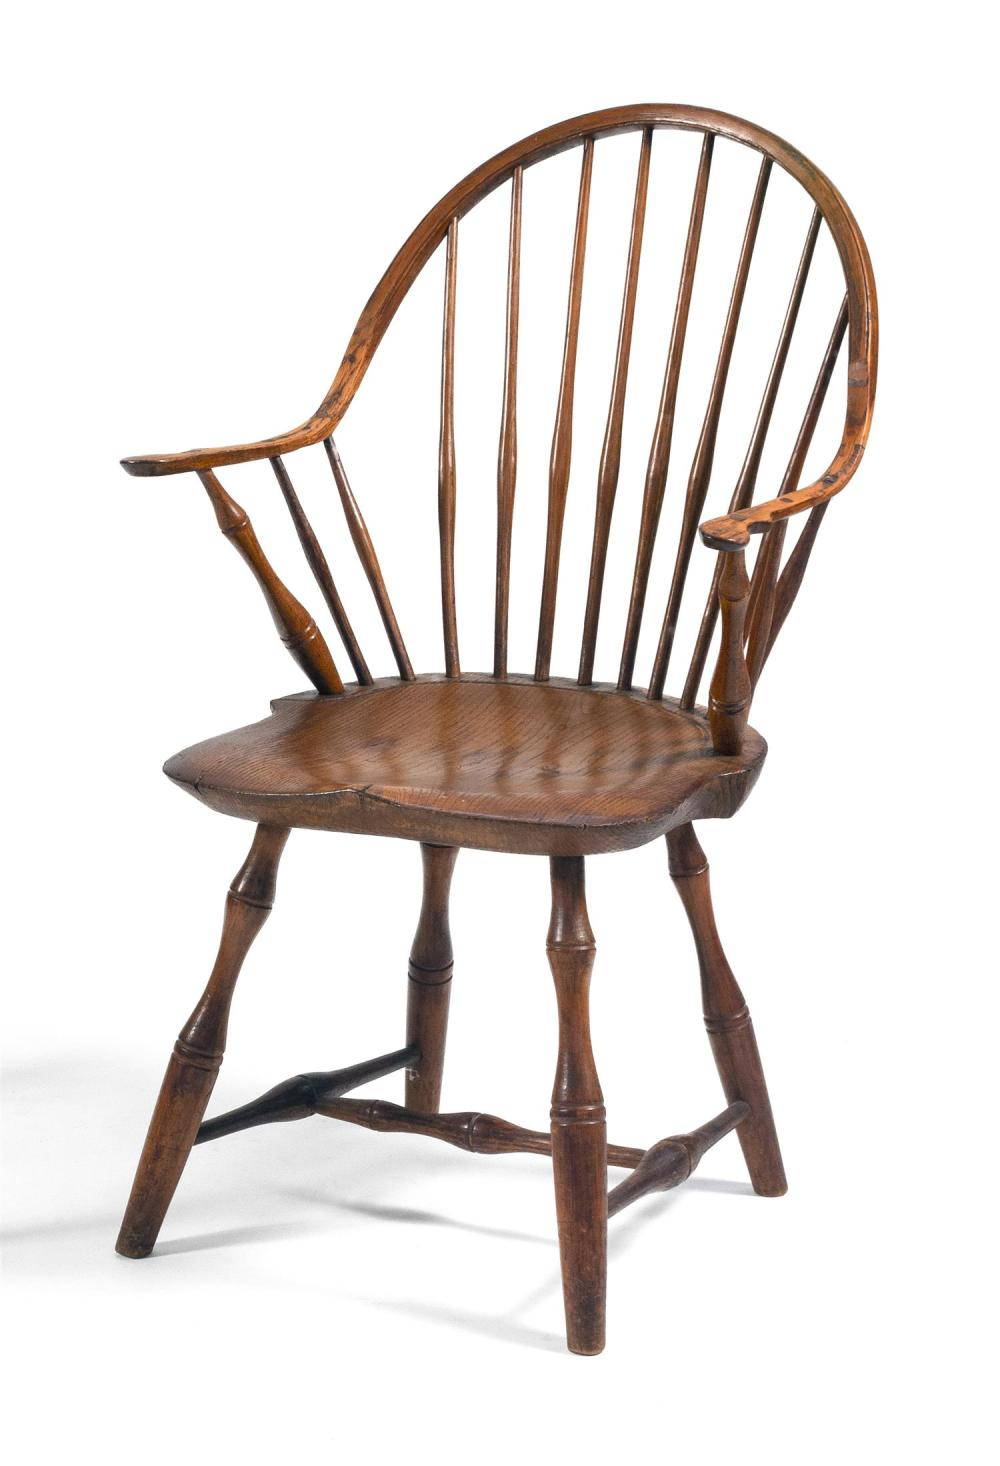 """WINDSOR CONTINUOUS ARMCHAIR In ash and maple. Back height 34.25"""". Seat height 16.5""""."""